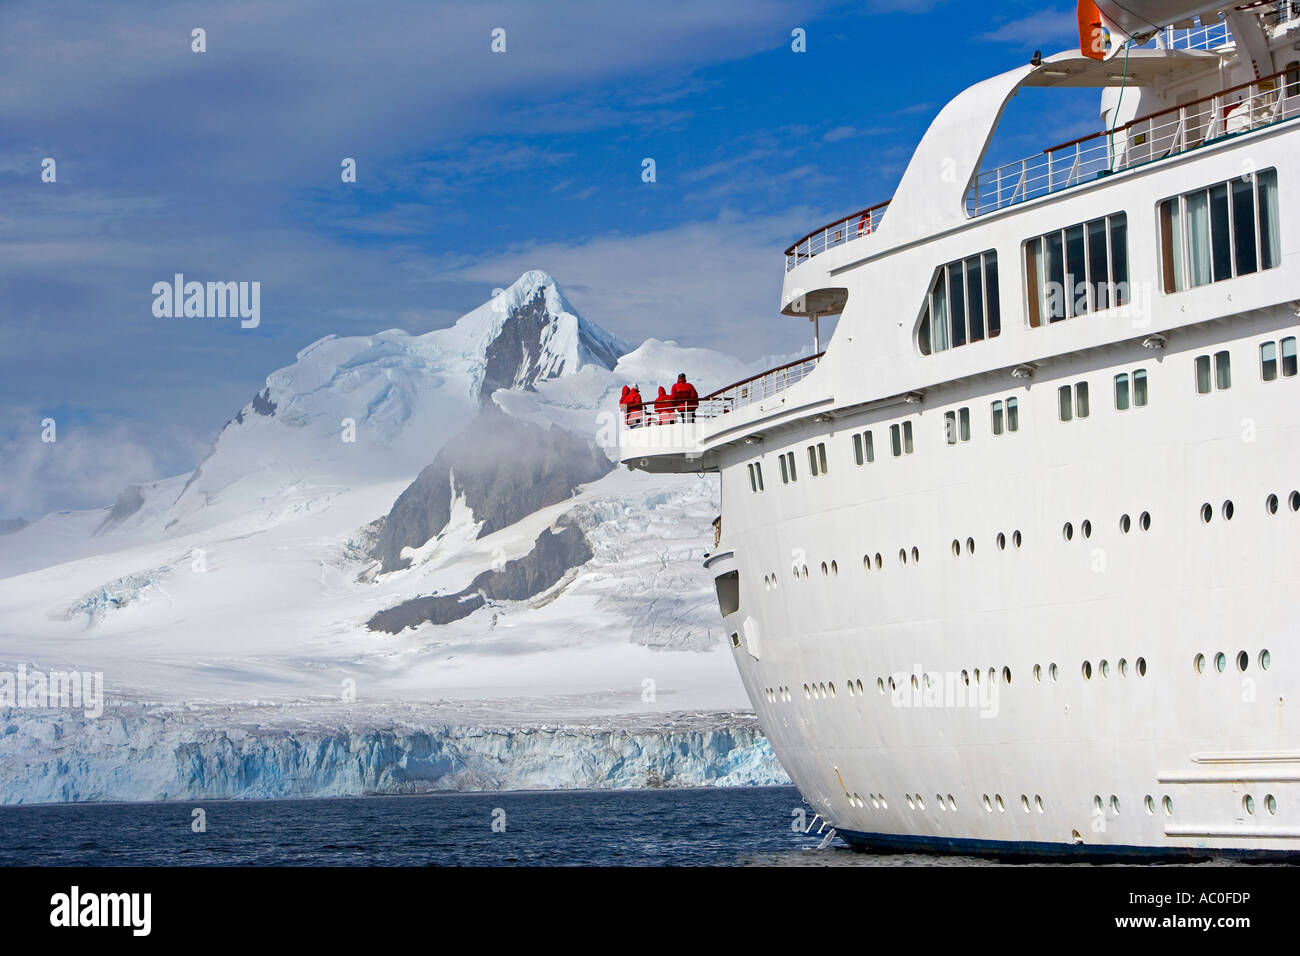 The mountains of the Livingstone Range at the stern of the MV Discovery during a landing at Half Moon Bay in Antarctica.The - Stock Image